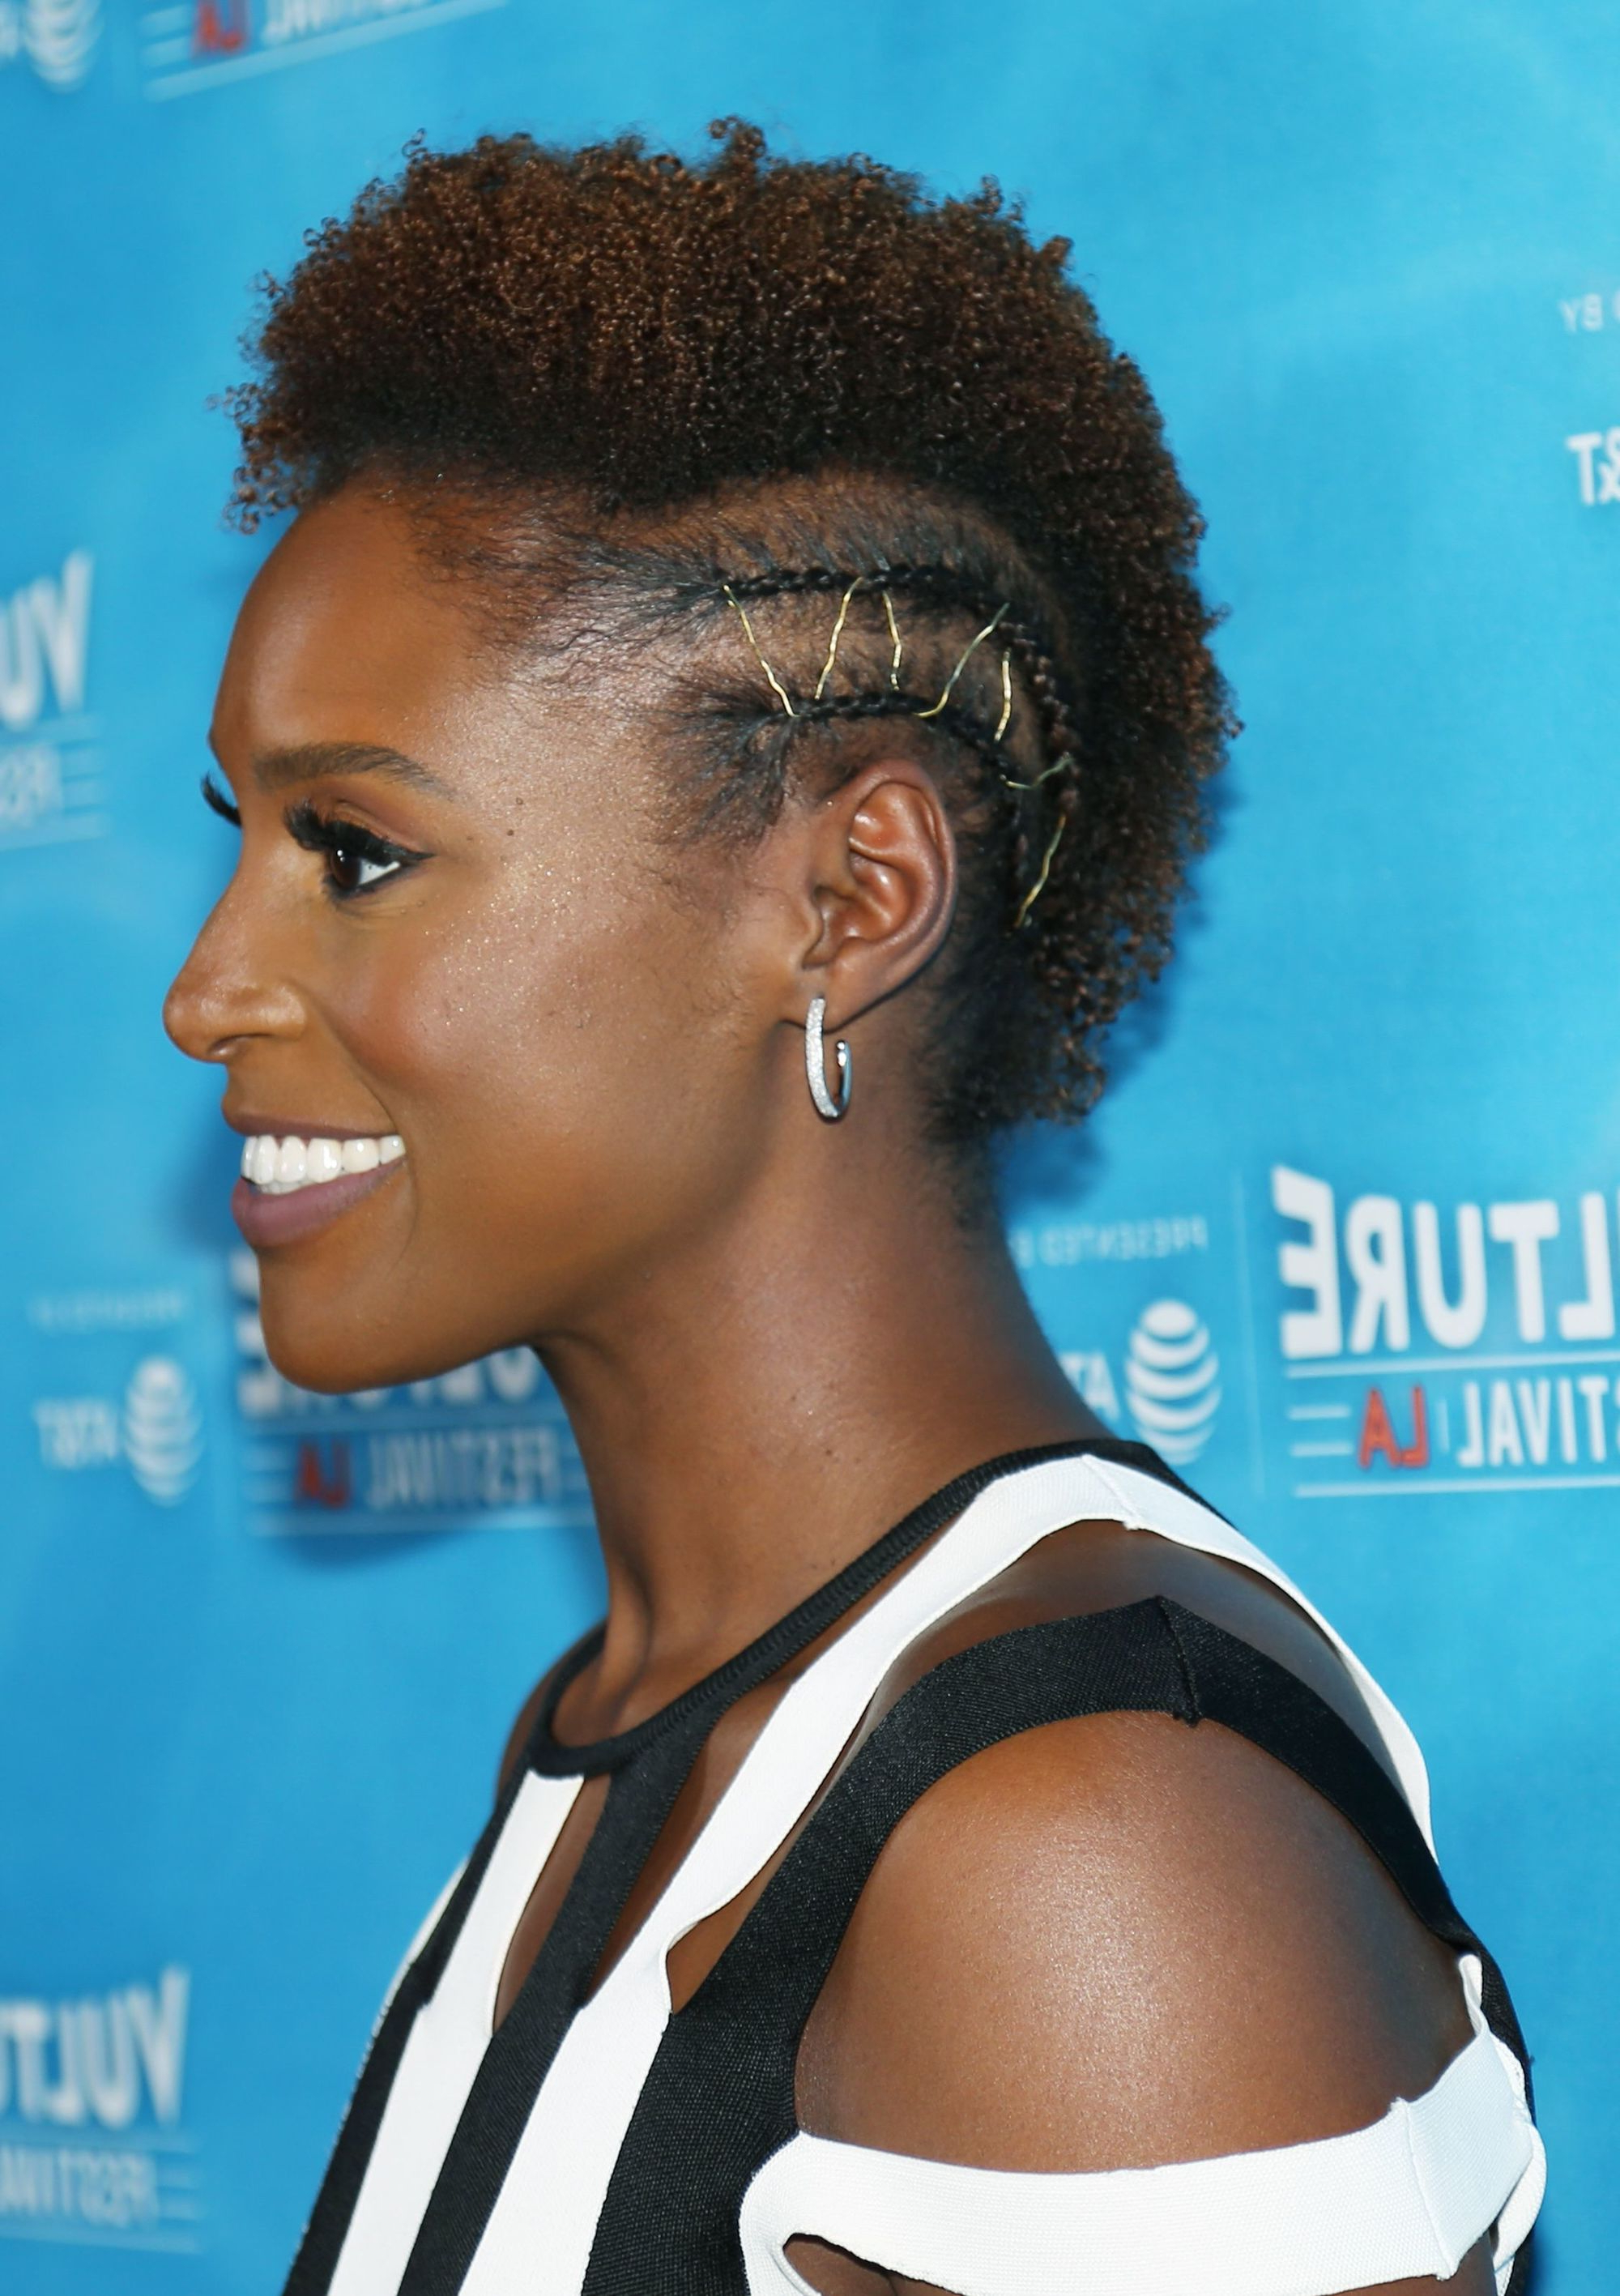 10 Mohawk Hairstyles For Black Women You Seriously Need To Intended For Well Liked Black & Red Curls Mohawk Hairstyles (View 14 of 20)